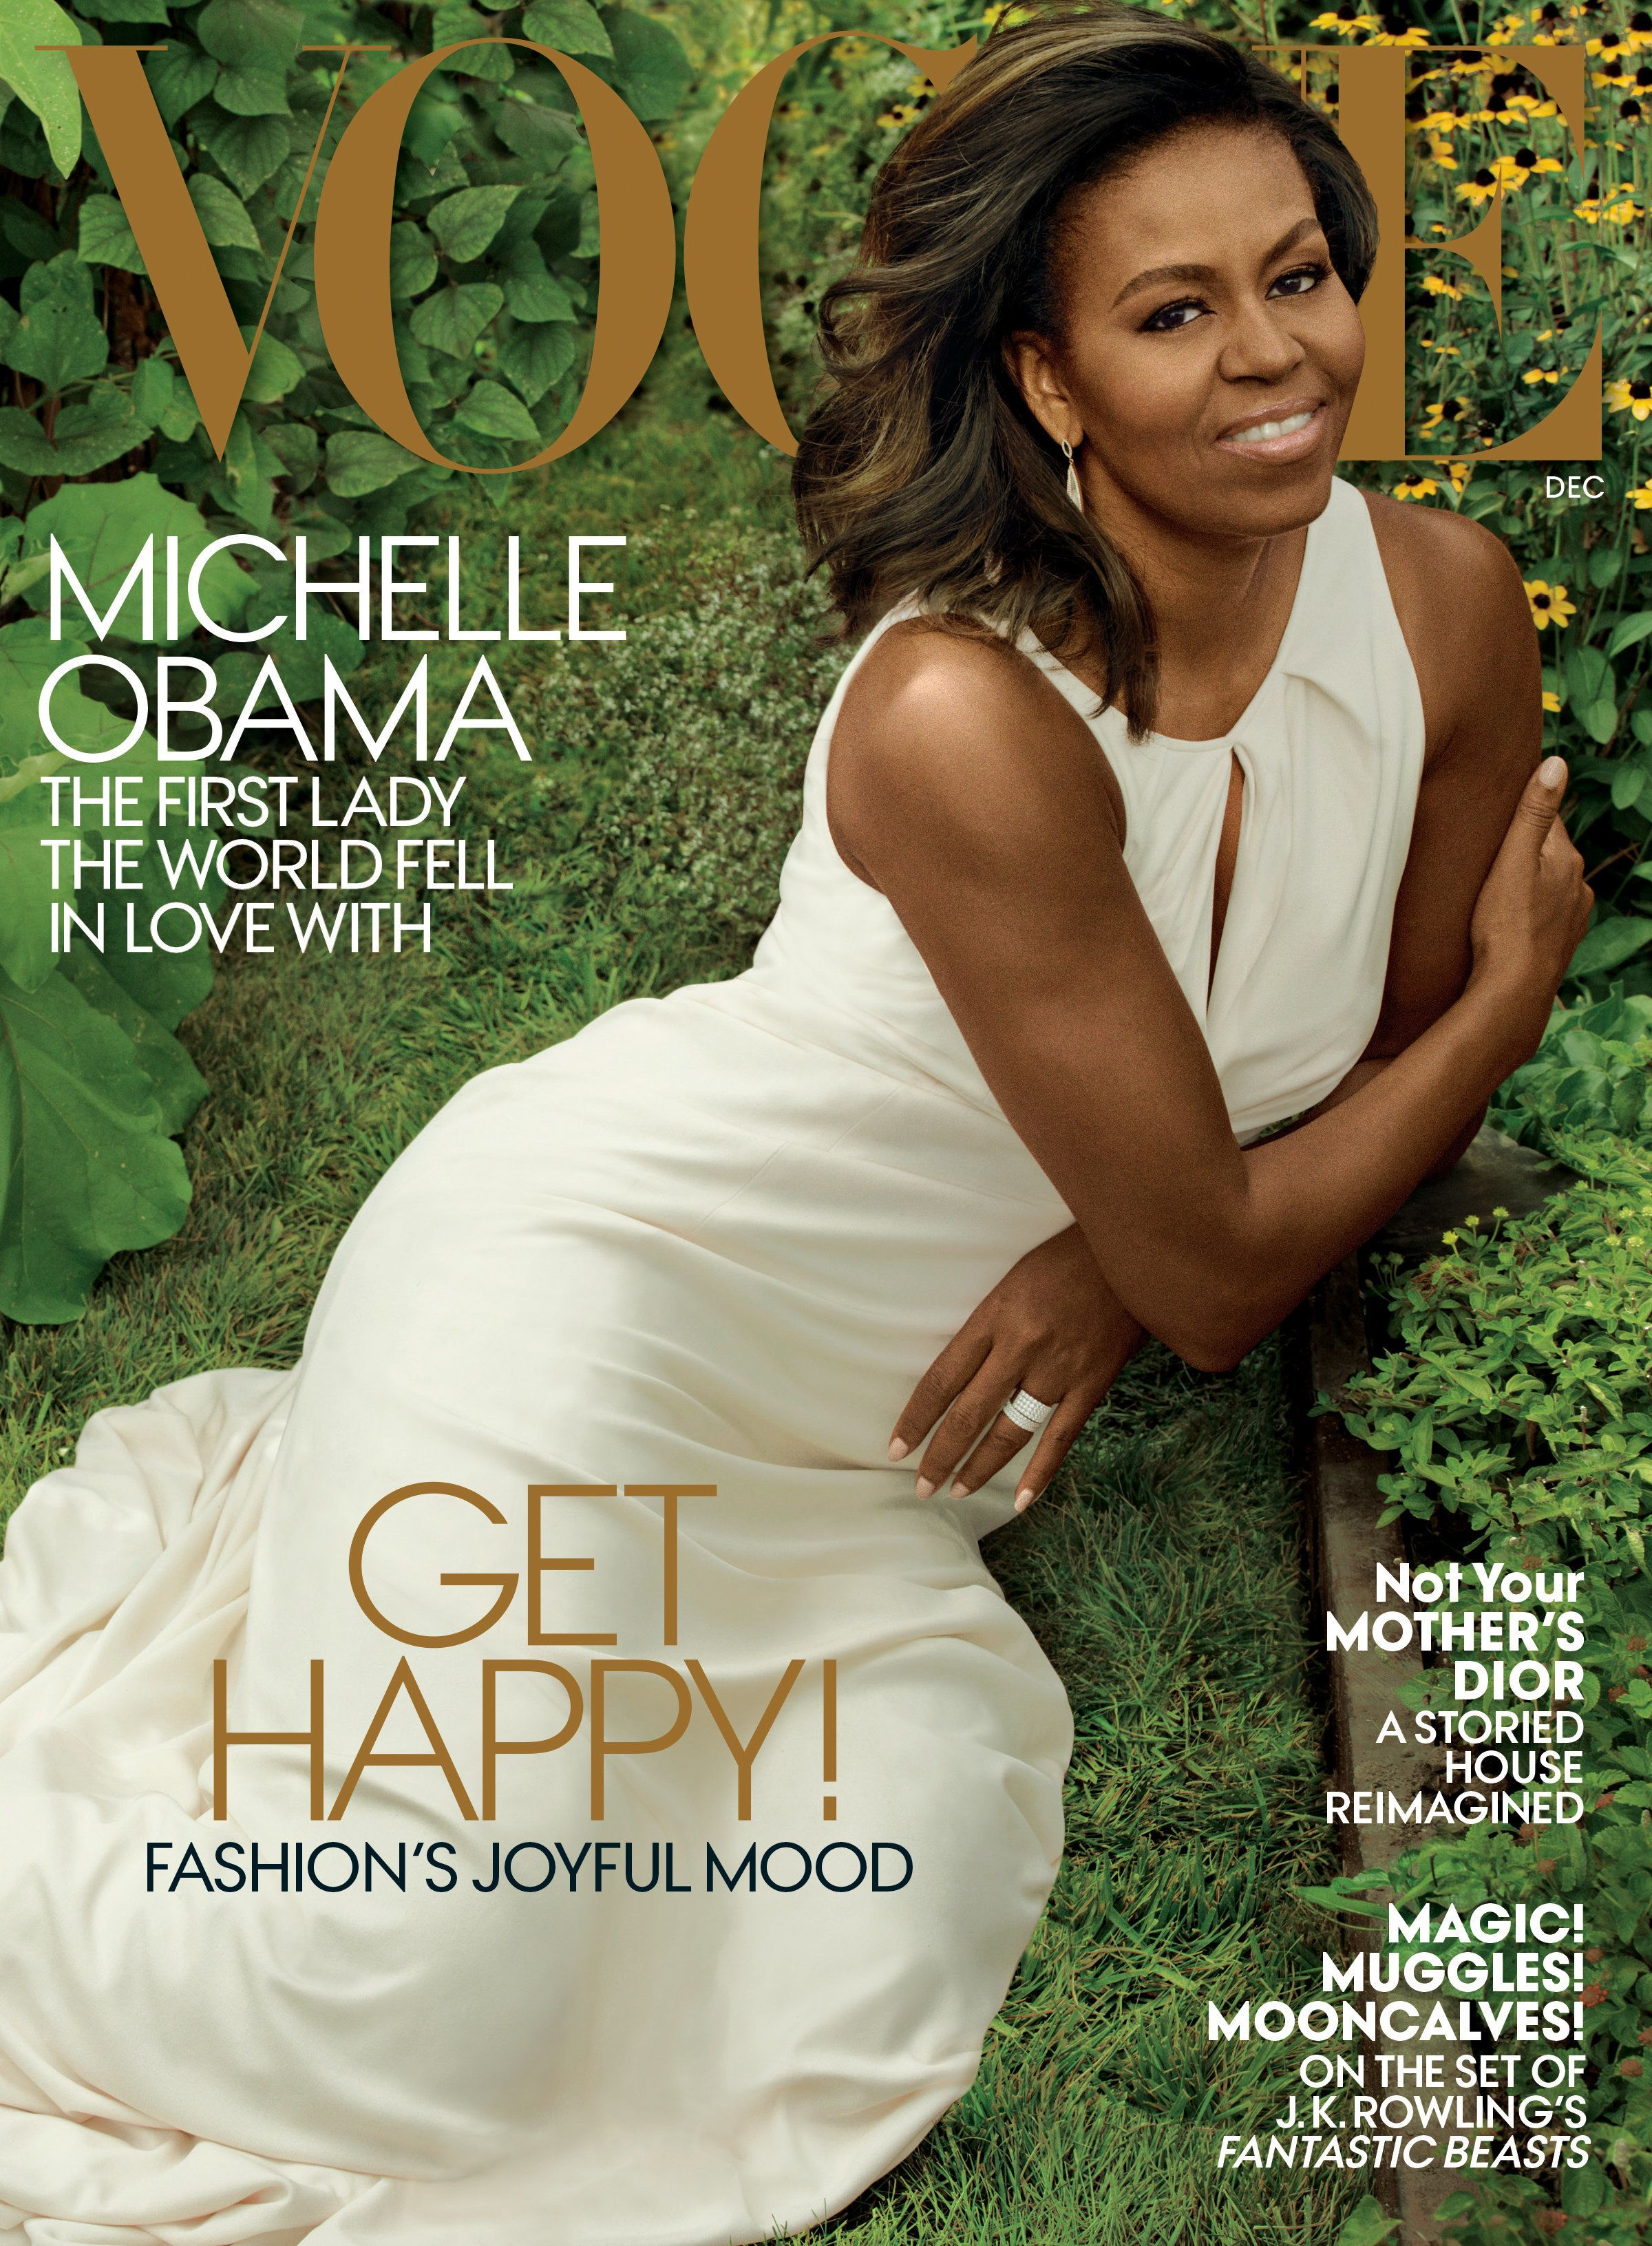 Michelle Obama's December 2016 Vogue cover: More of this, please.